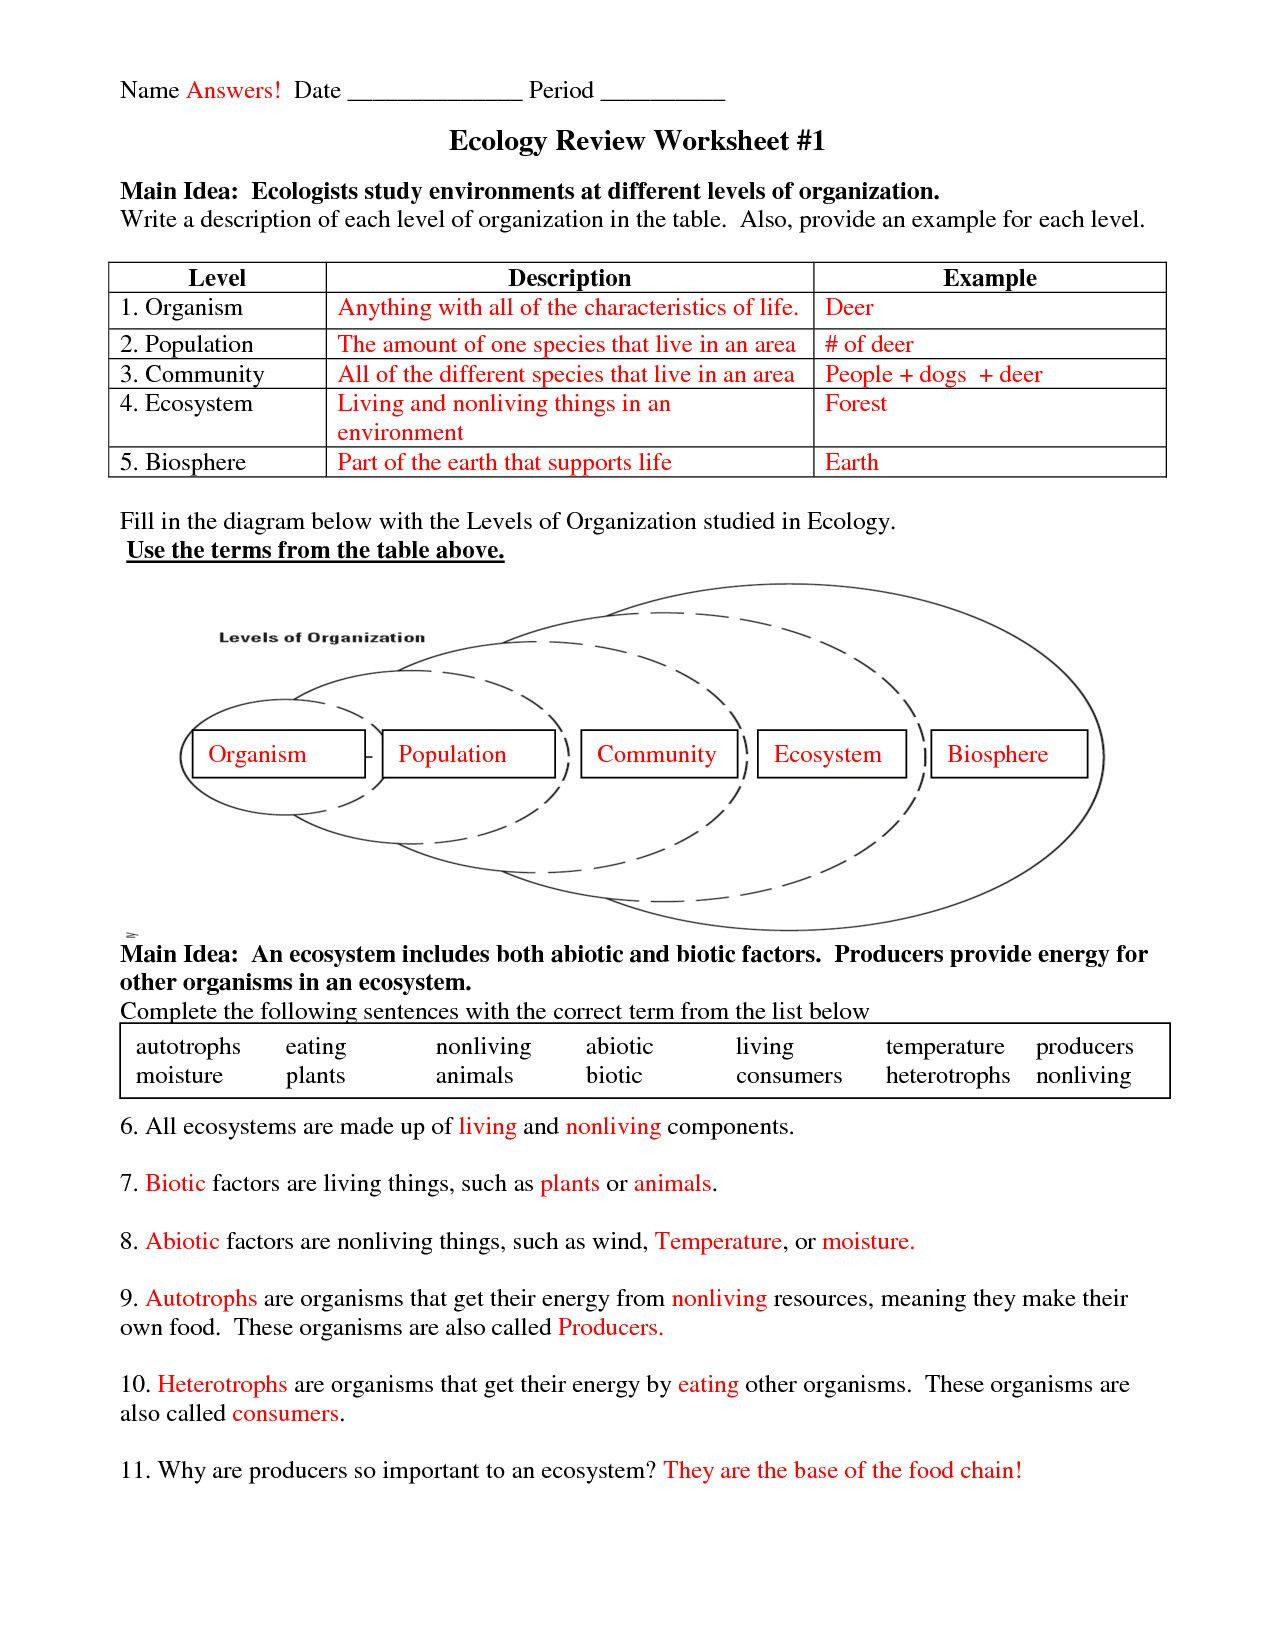 Characteristics Of Life Worksheet Multi Gamer Free 5th Grade Mon Core Math Worksheets